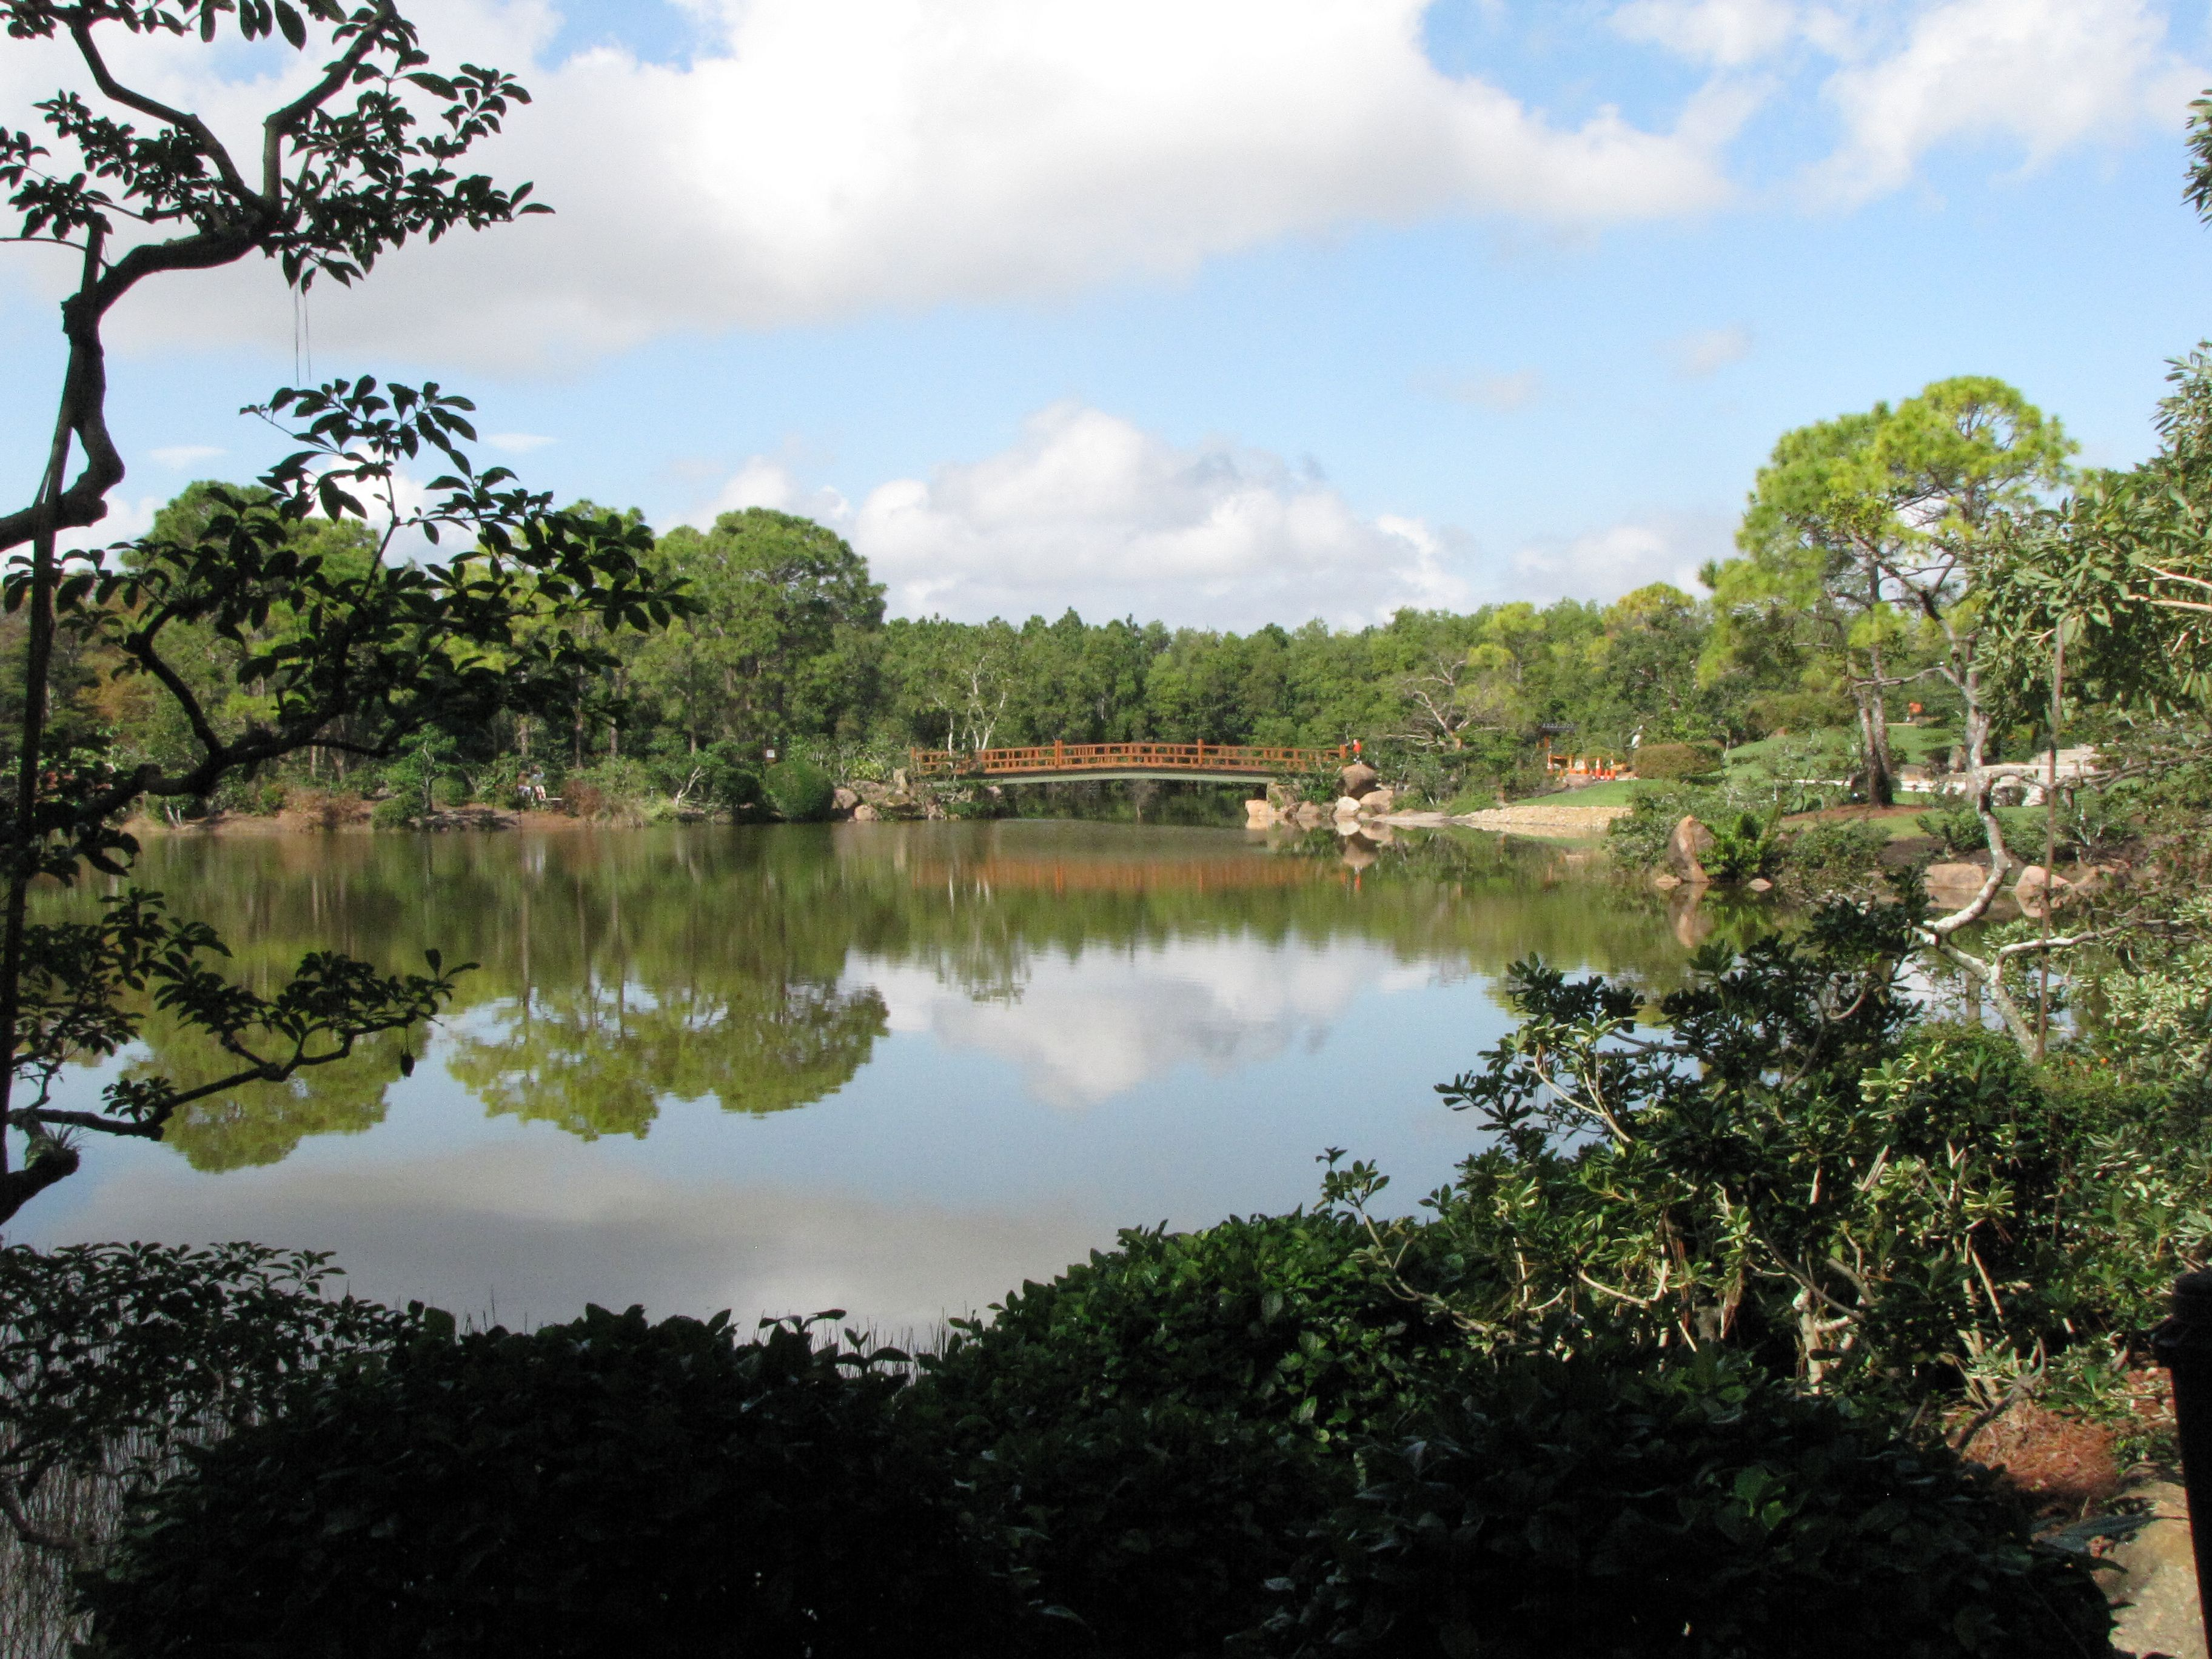 A Visit To The Morikami Japanese Gardens And Museum, Delray